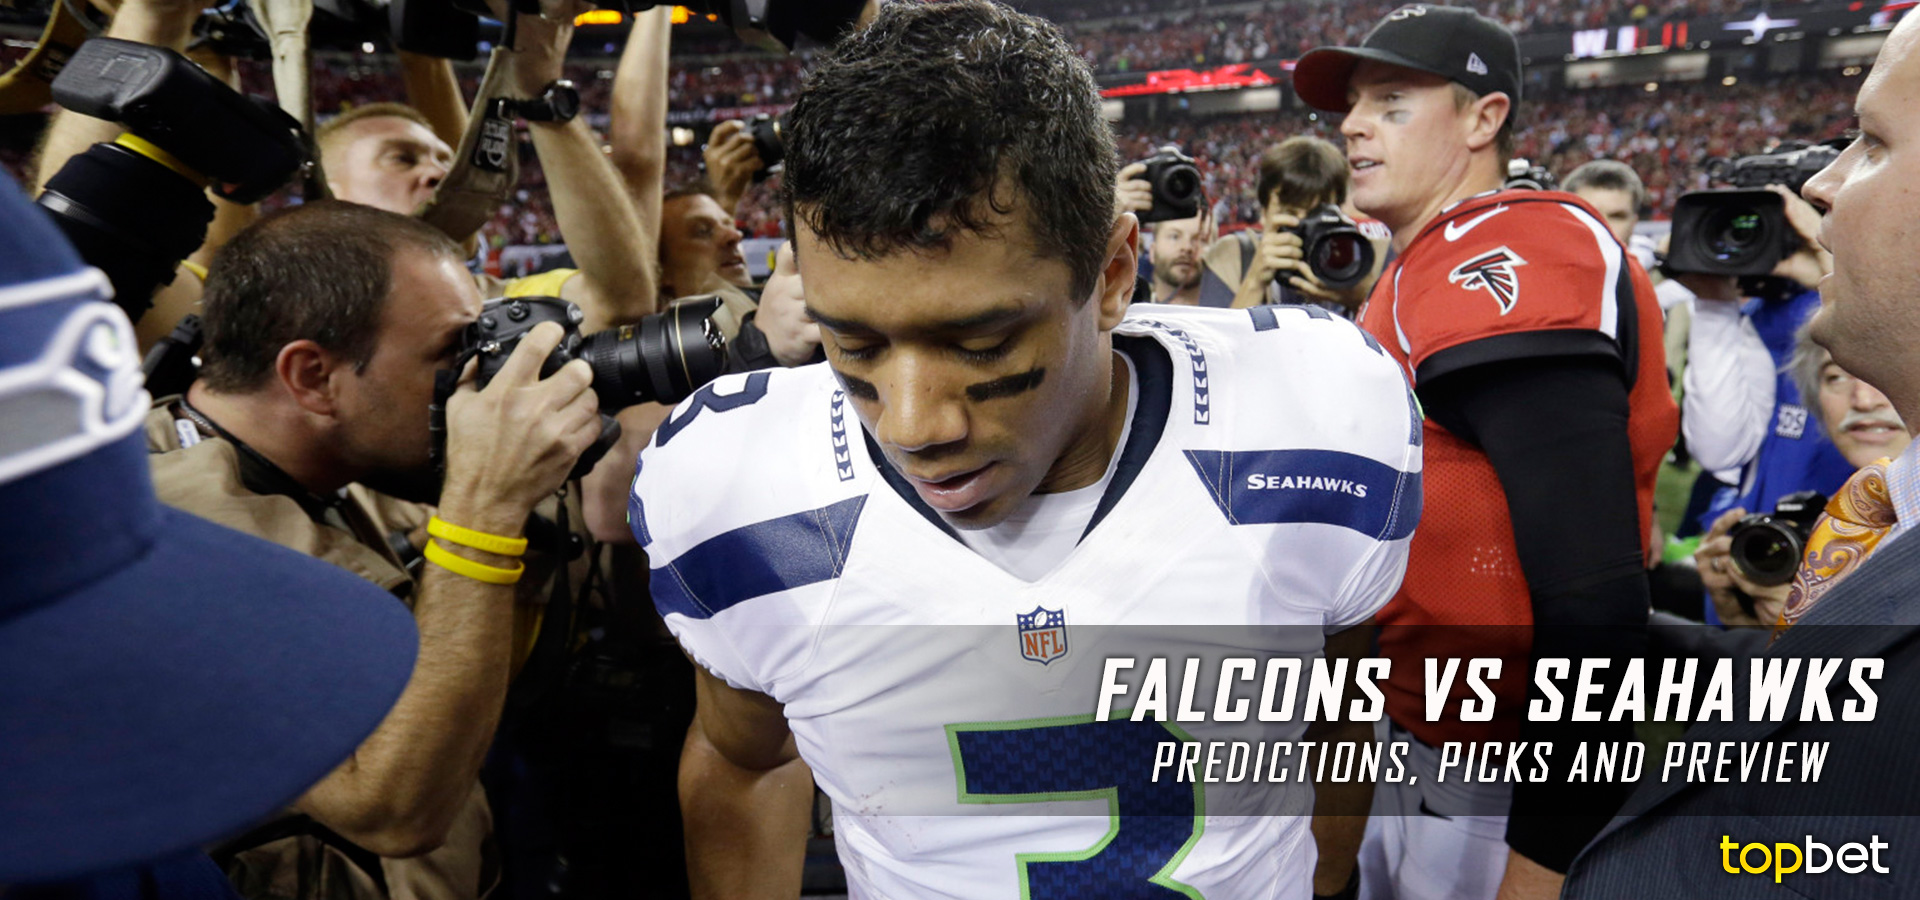 best sports gambling sites falcons seahawks odds